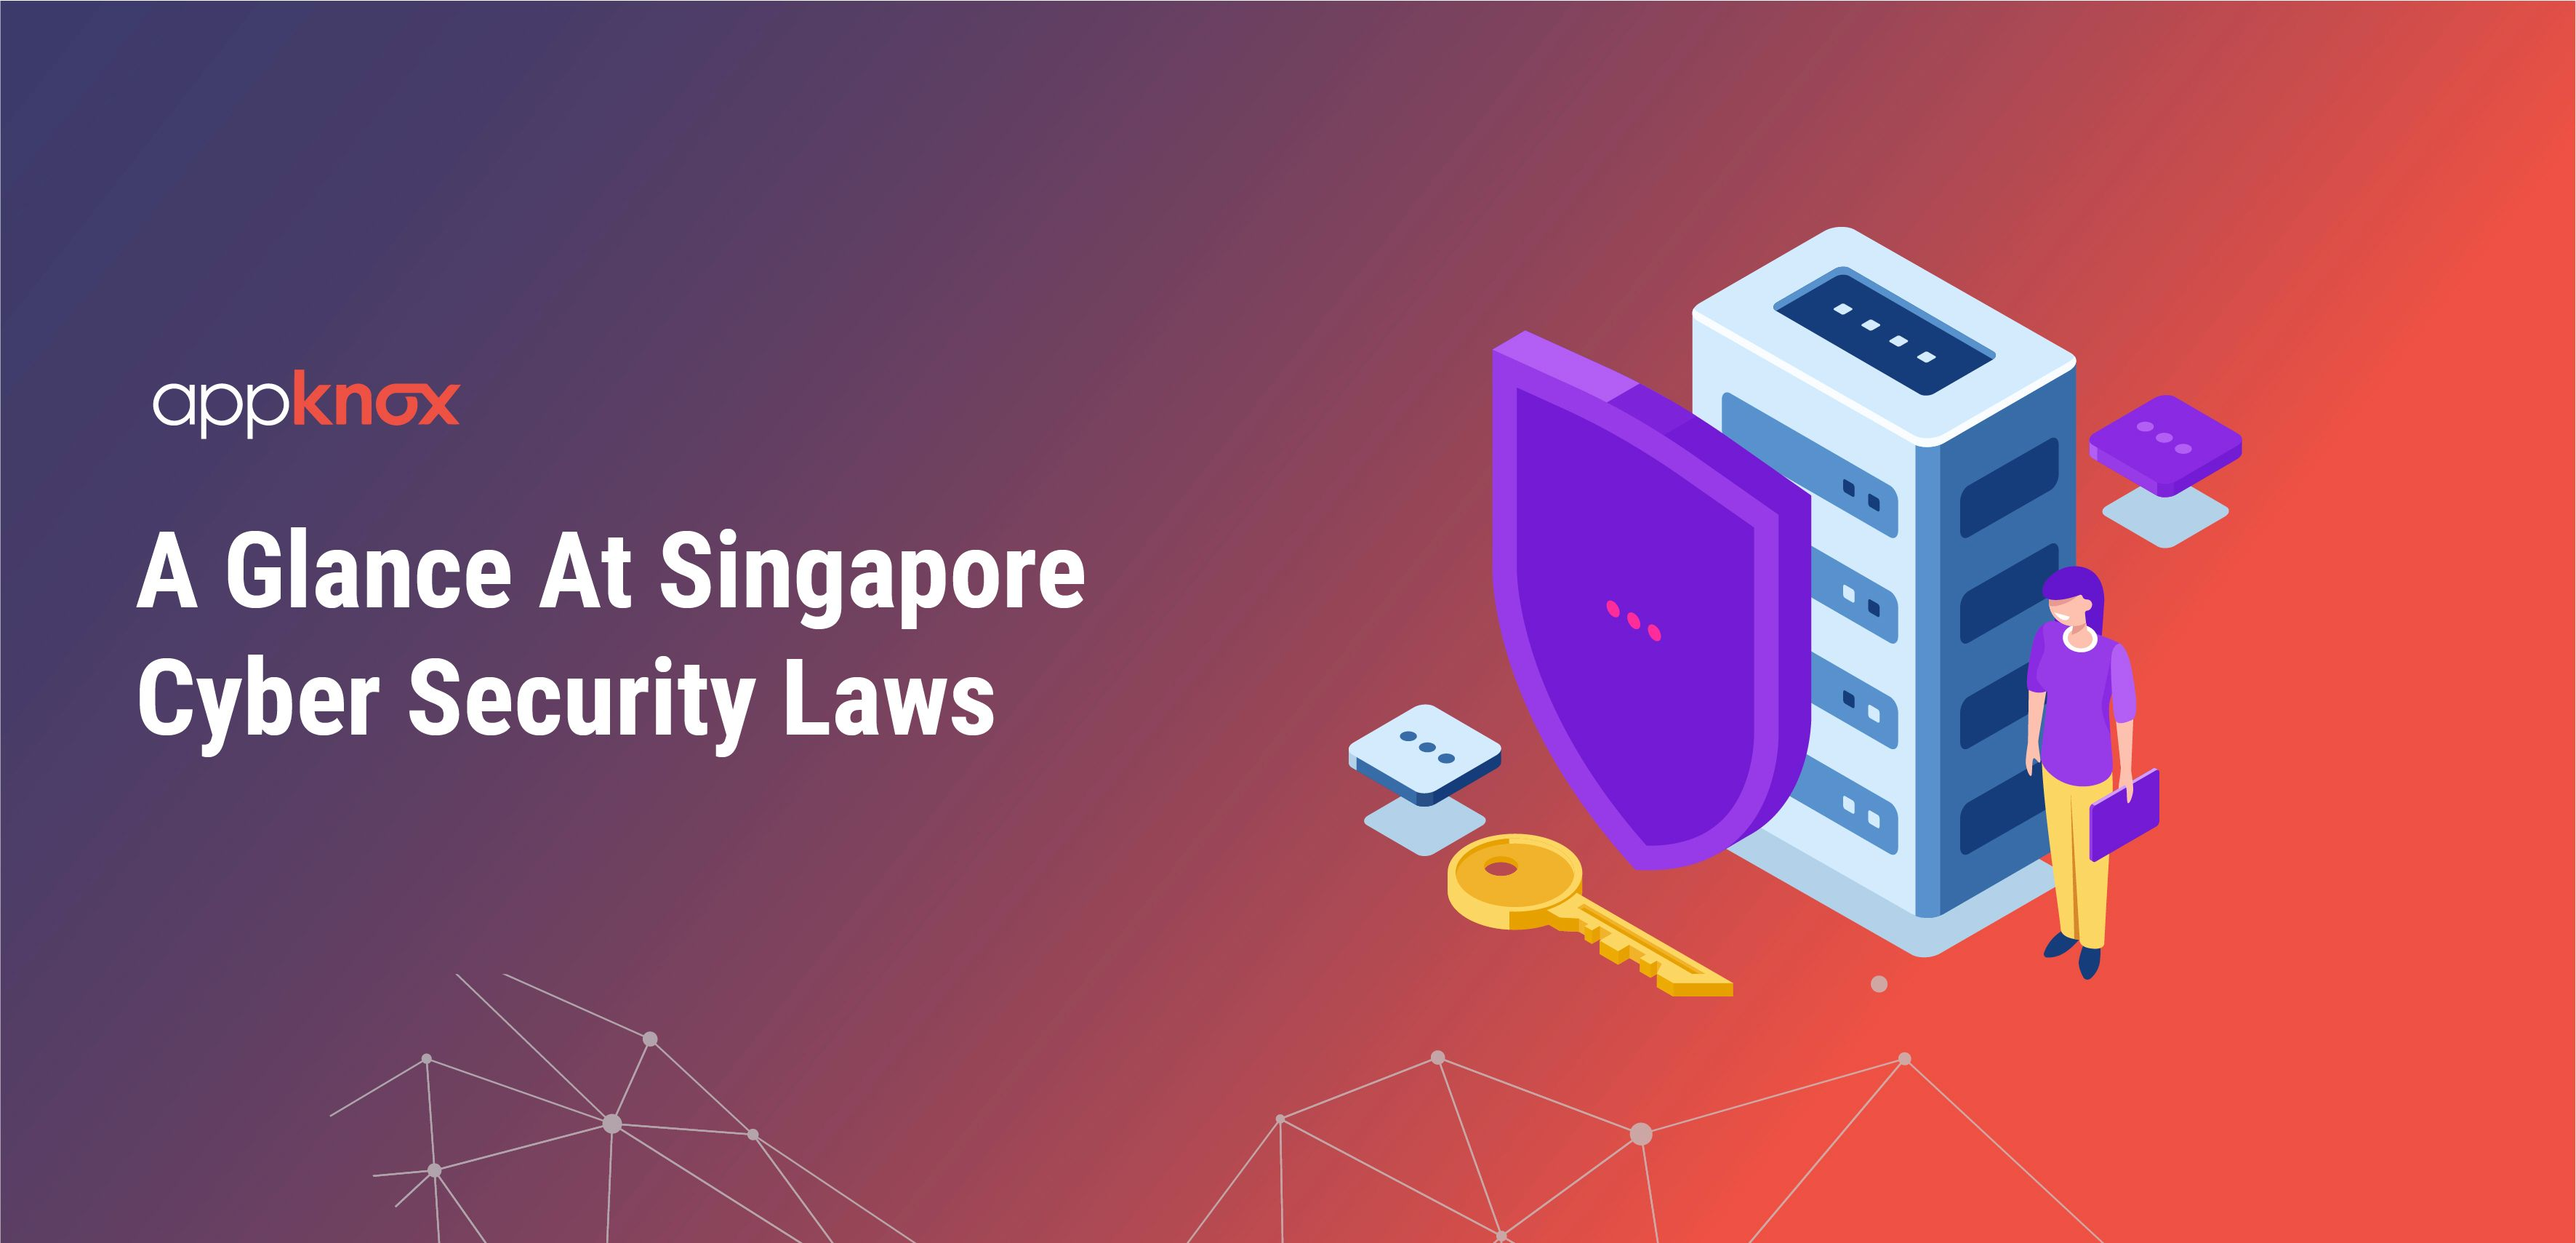 A Glance At Singapore Cyber Security Laws